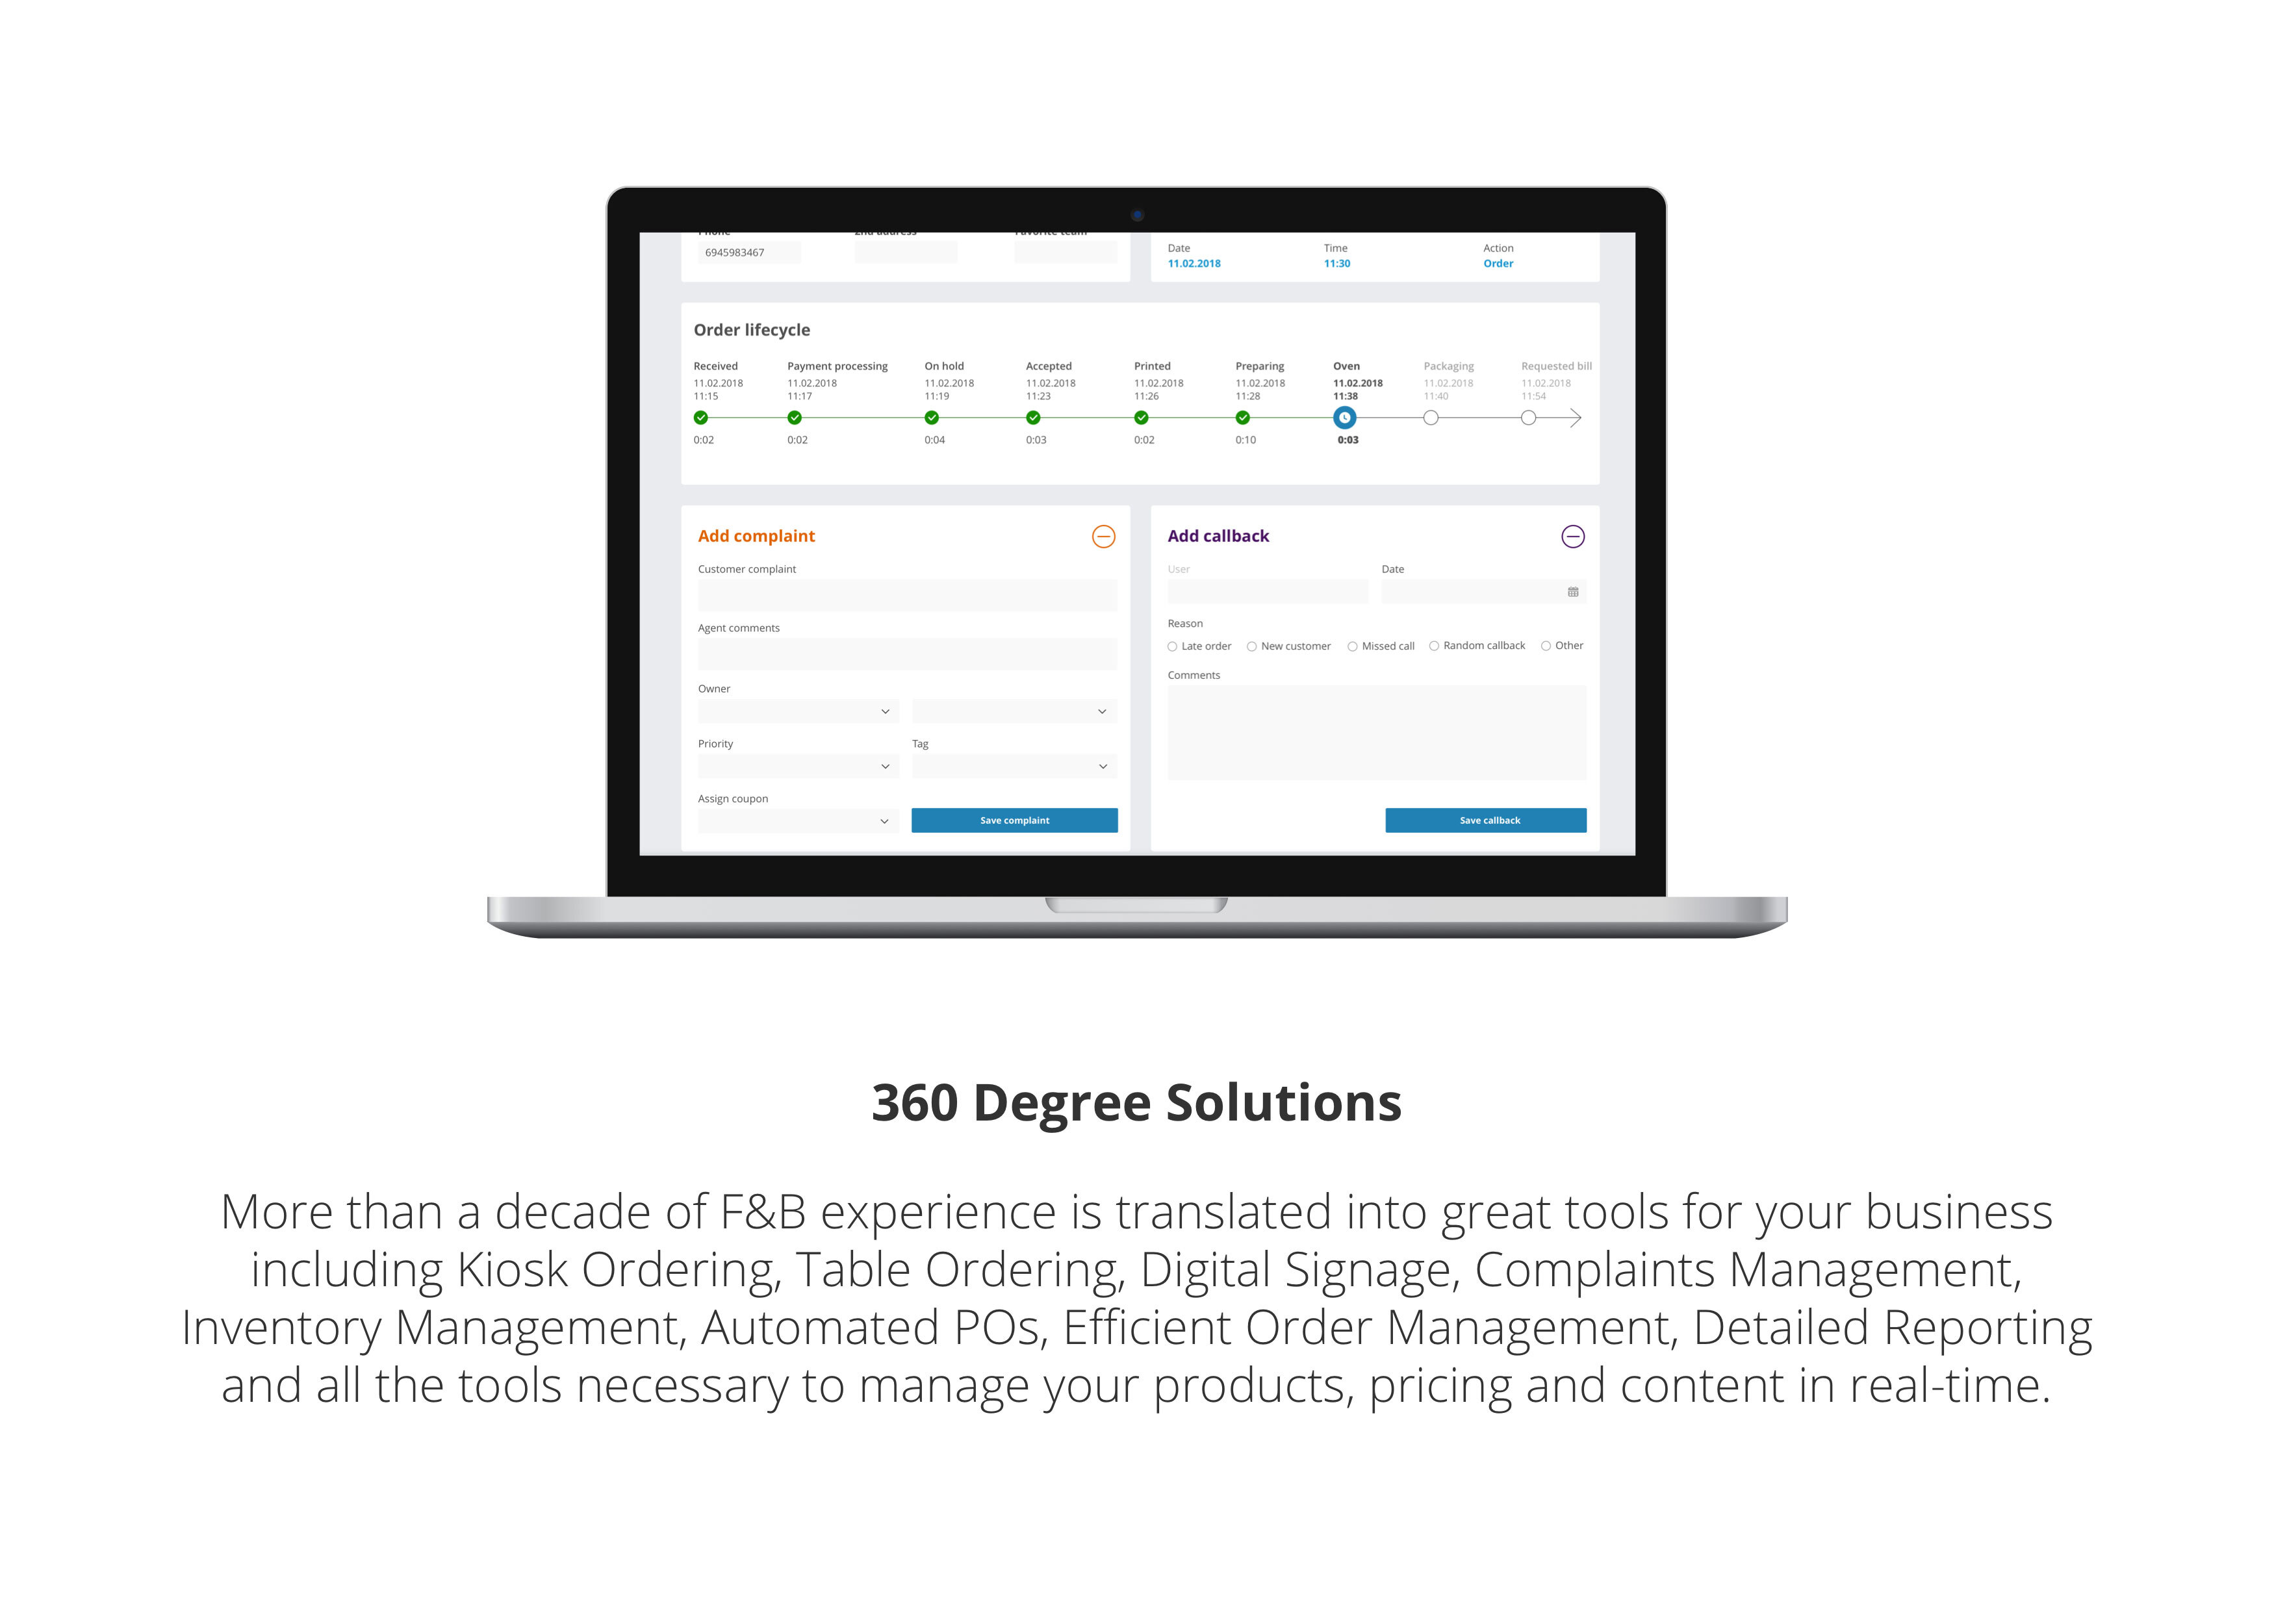 360 Degree Solutions